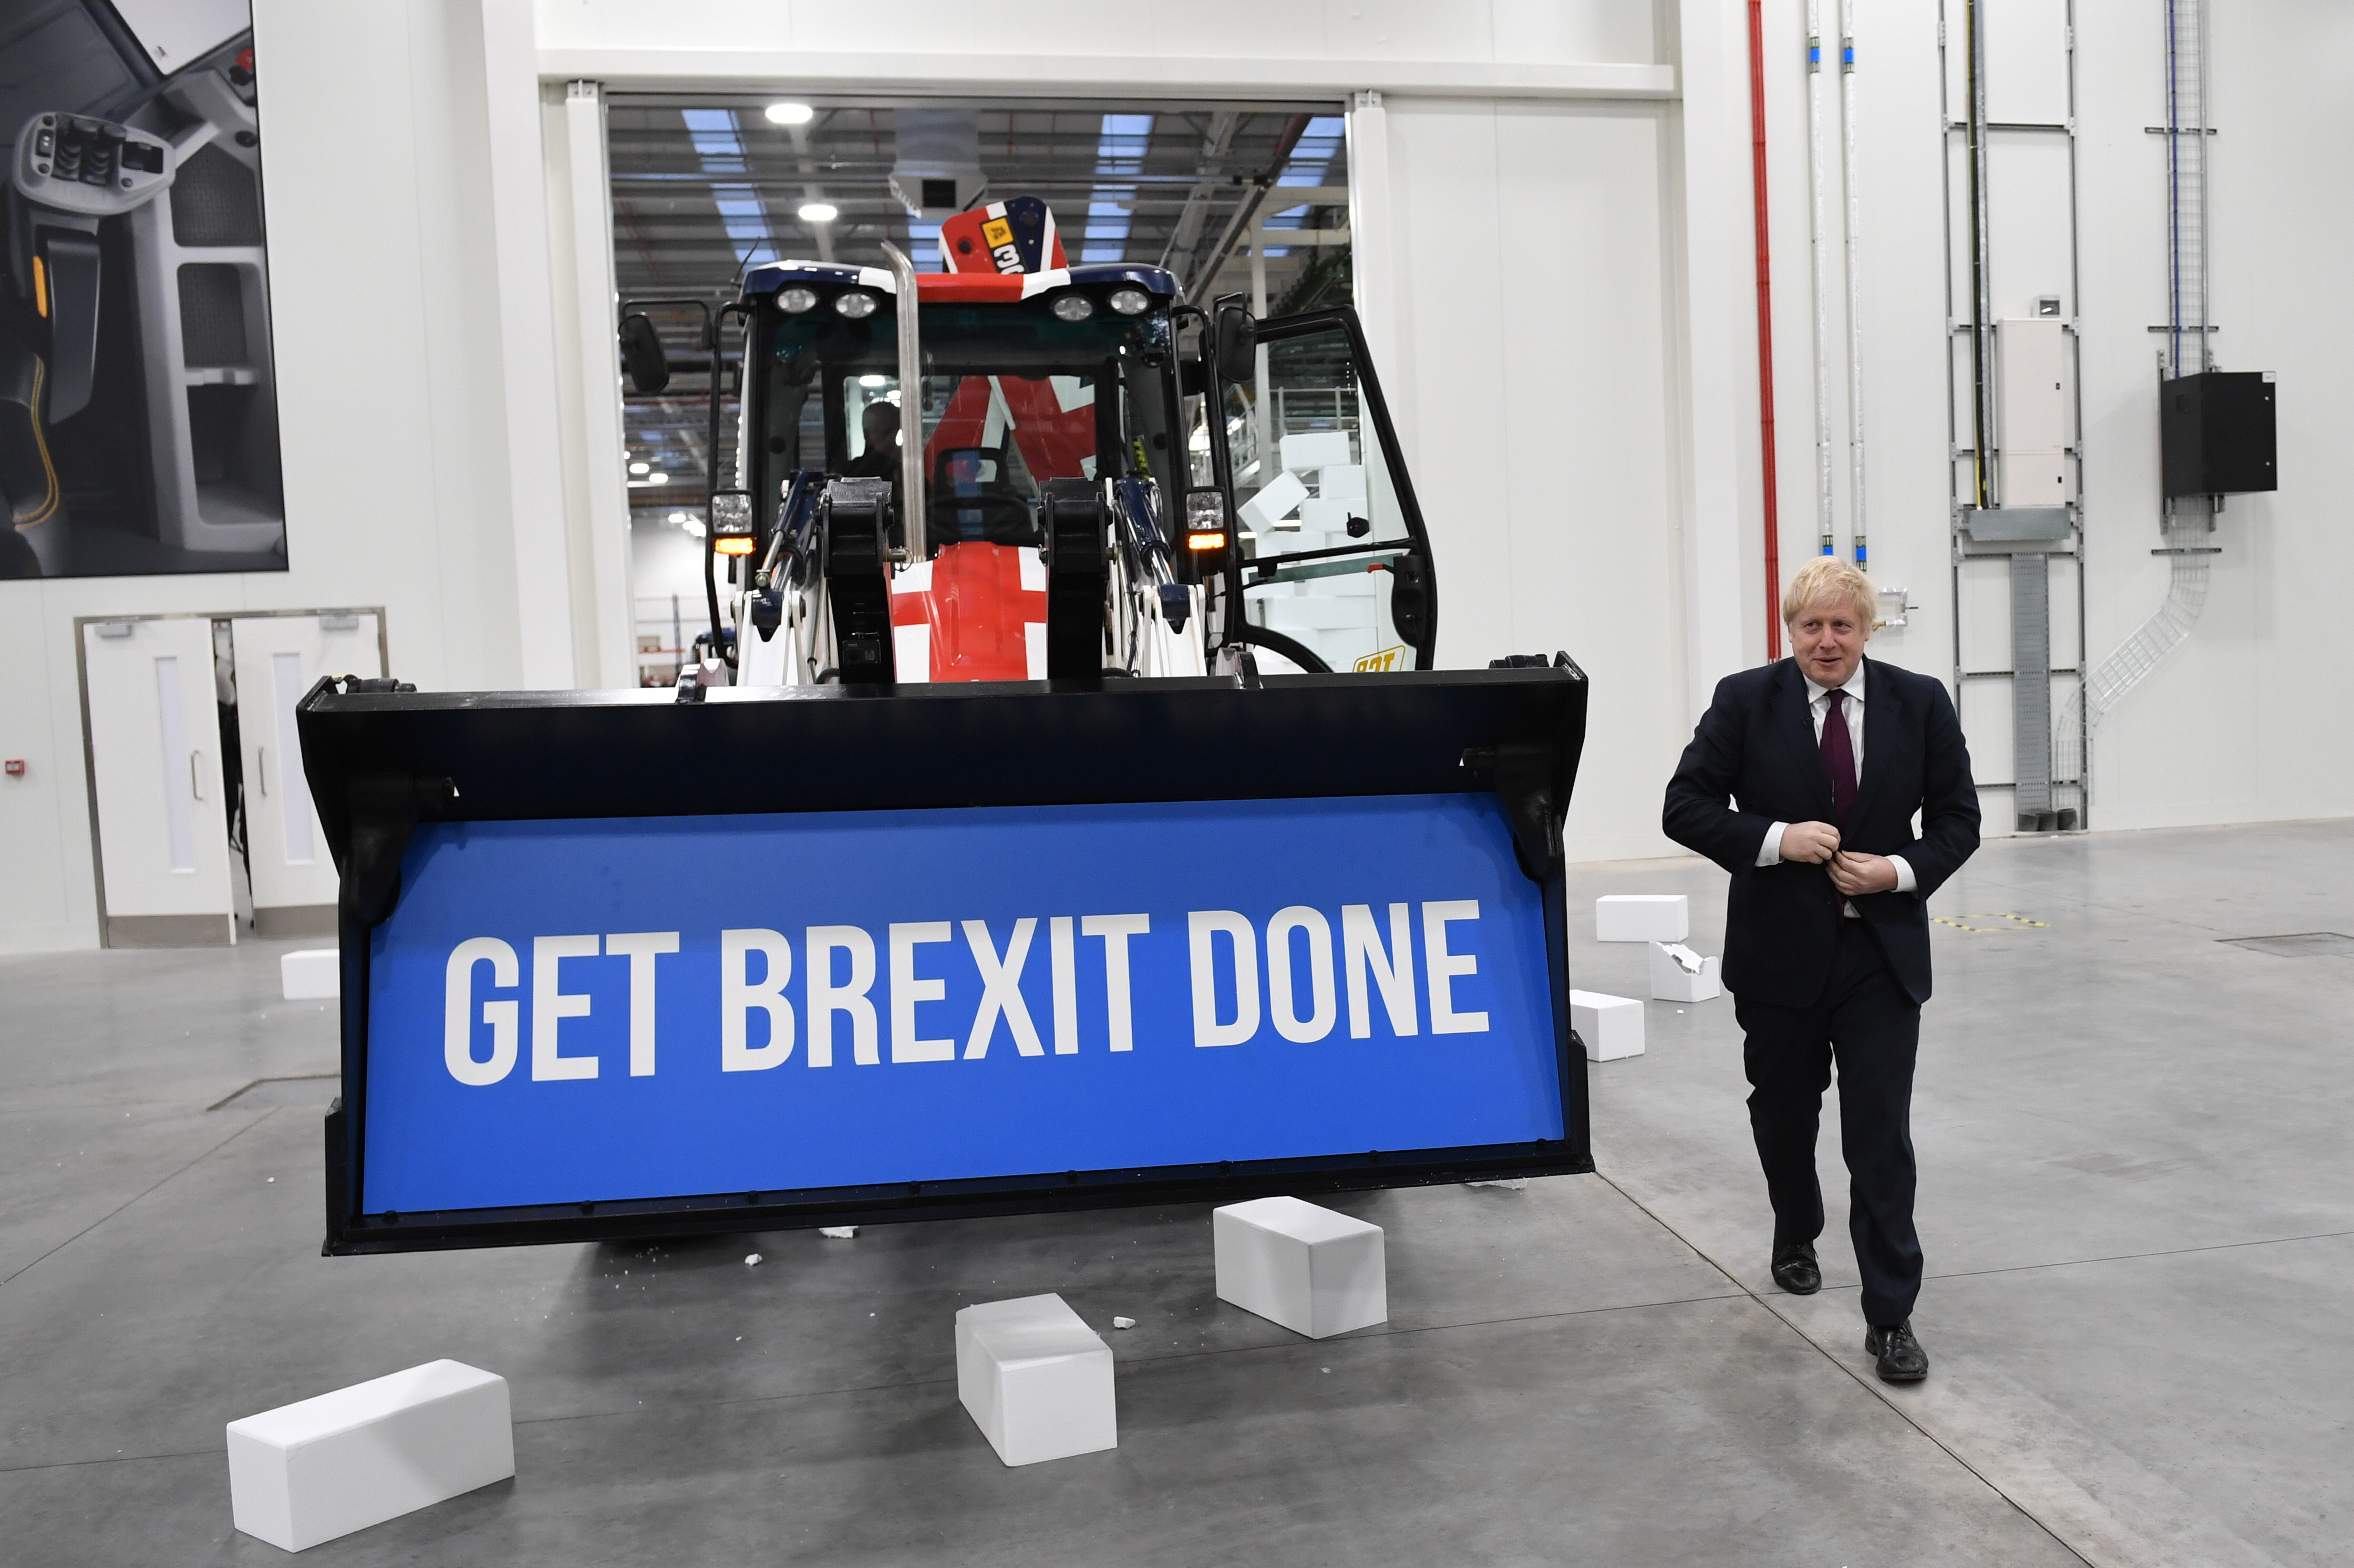 """Prime Minister Boris Johnson walks away after driving a Union flag-themed JCB, with the words """"Get Brexit Done"""" inside the digger bucket, through a fake wall emblazoned with the word """"Gridlock"""", during a visit to JCB cab manufacturing centre in Uttoxeter, while on the General Election campaign trail."""